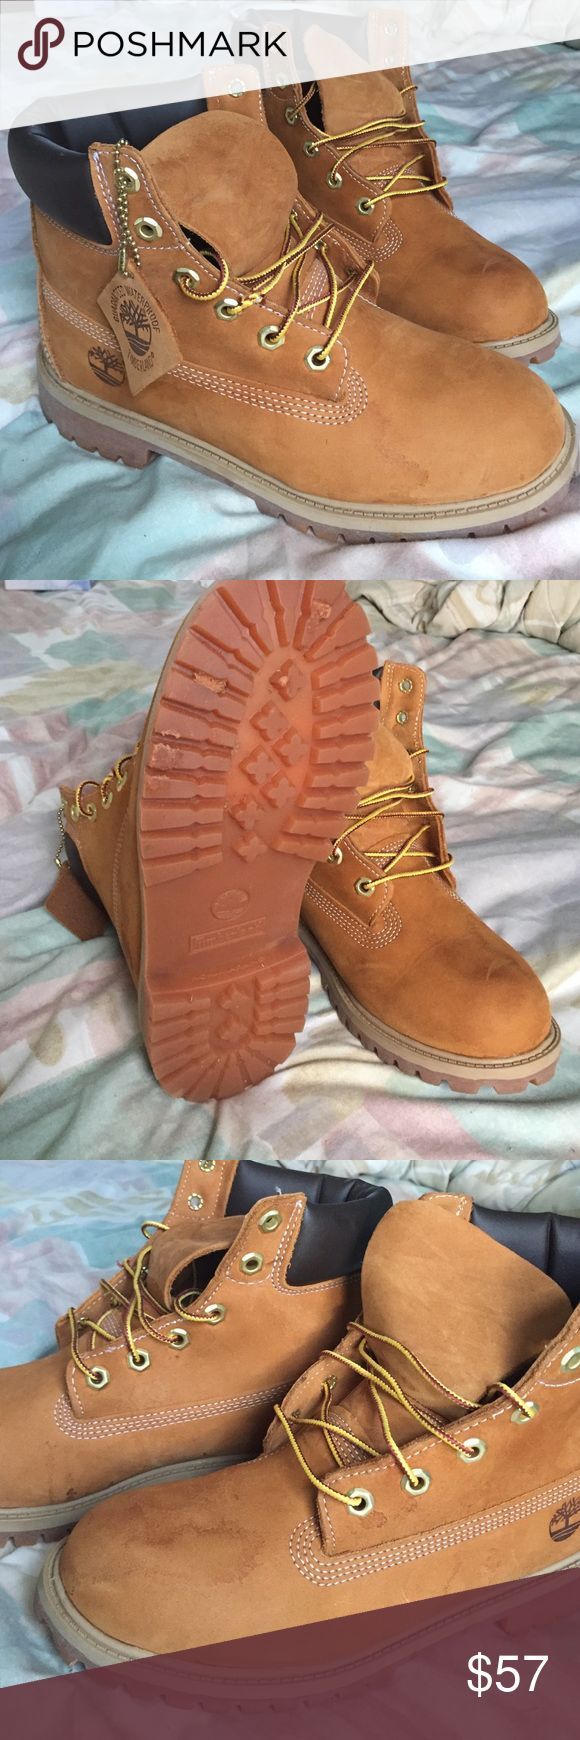 Authentic Timberland Wheat Boots Bought from another Posher. Size 6M was too big for me so now I am reselling for same price I bought them for. ***PRICE IS FIRM*** Slight wear from previous posher but nothing noticeable when the shoes are on. Timberland Shoes